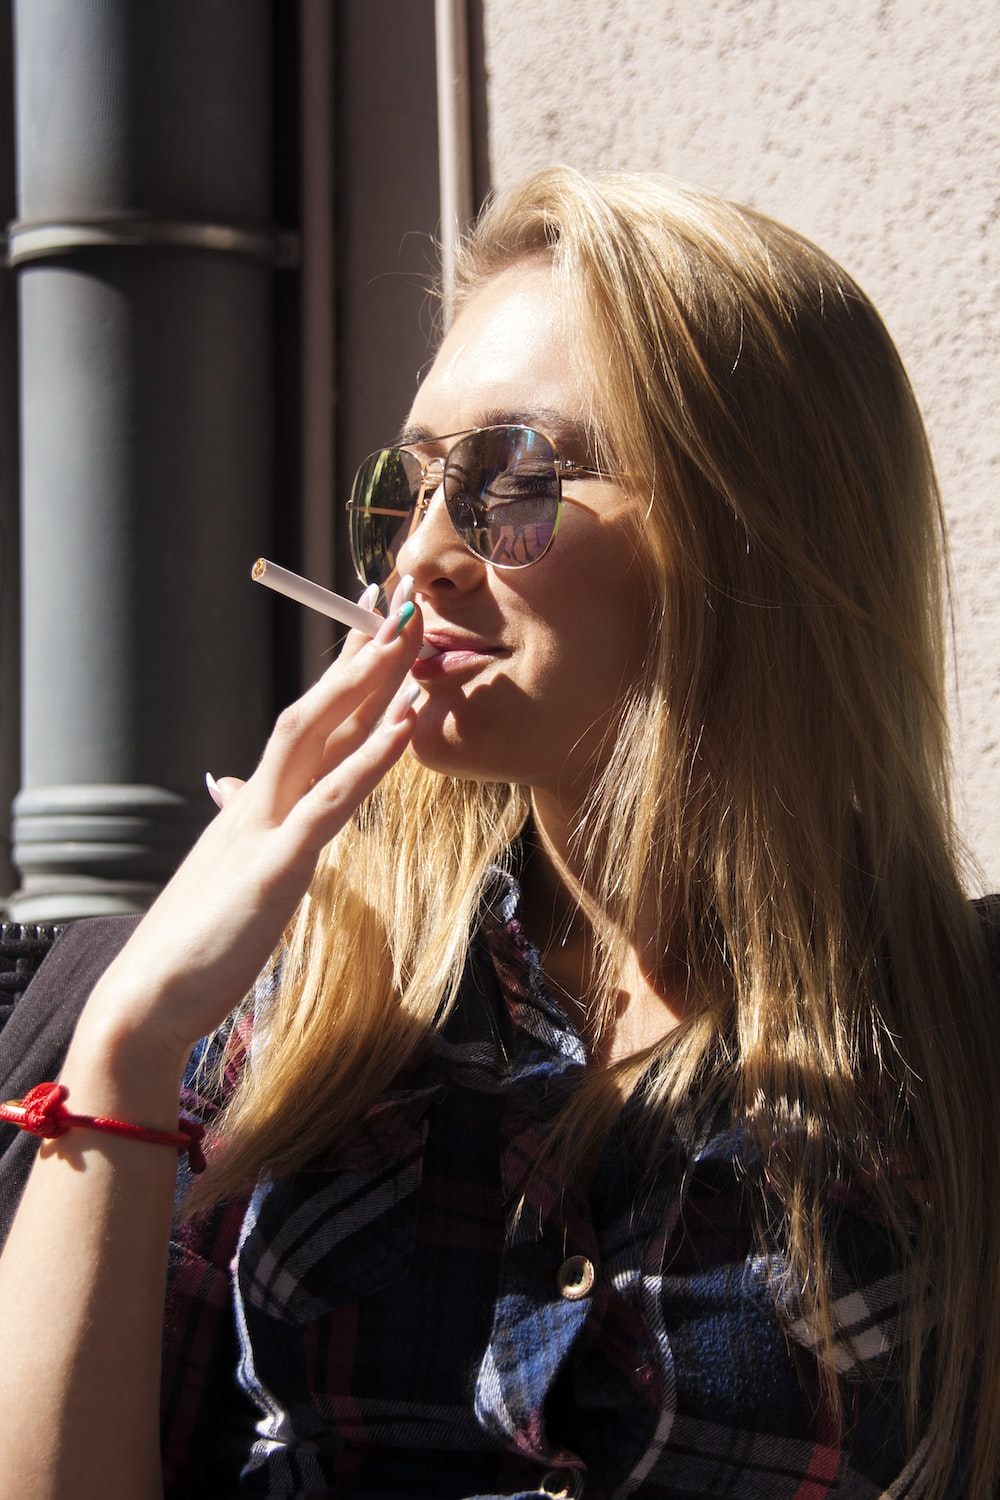 close-up photography of woman holding cigarette stick during daytime